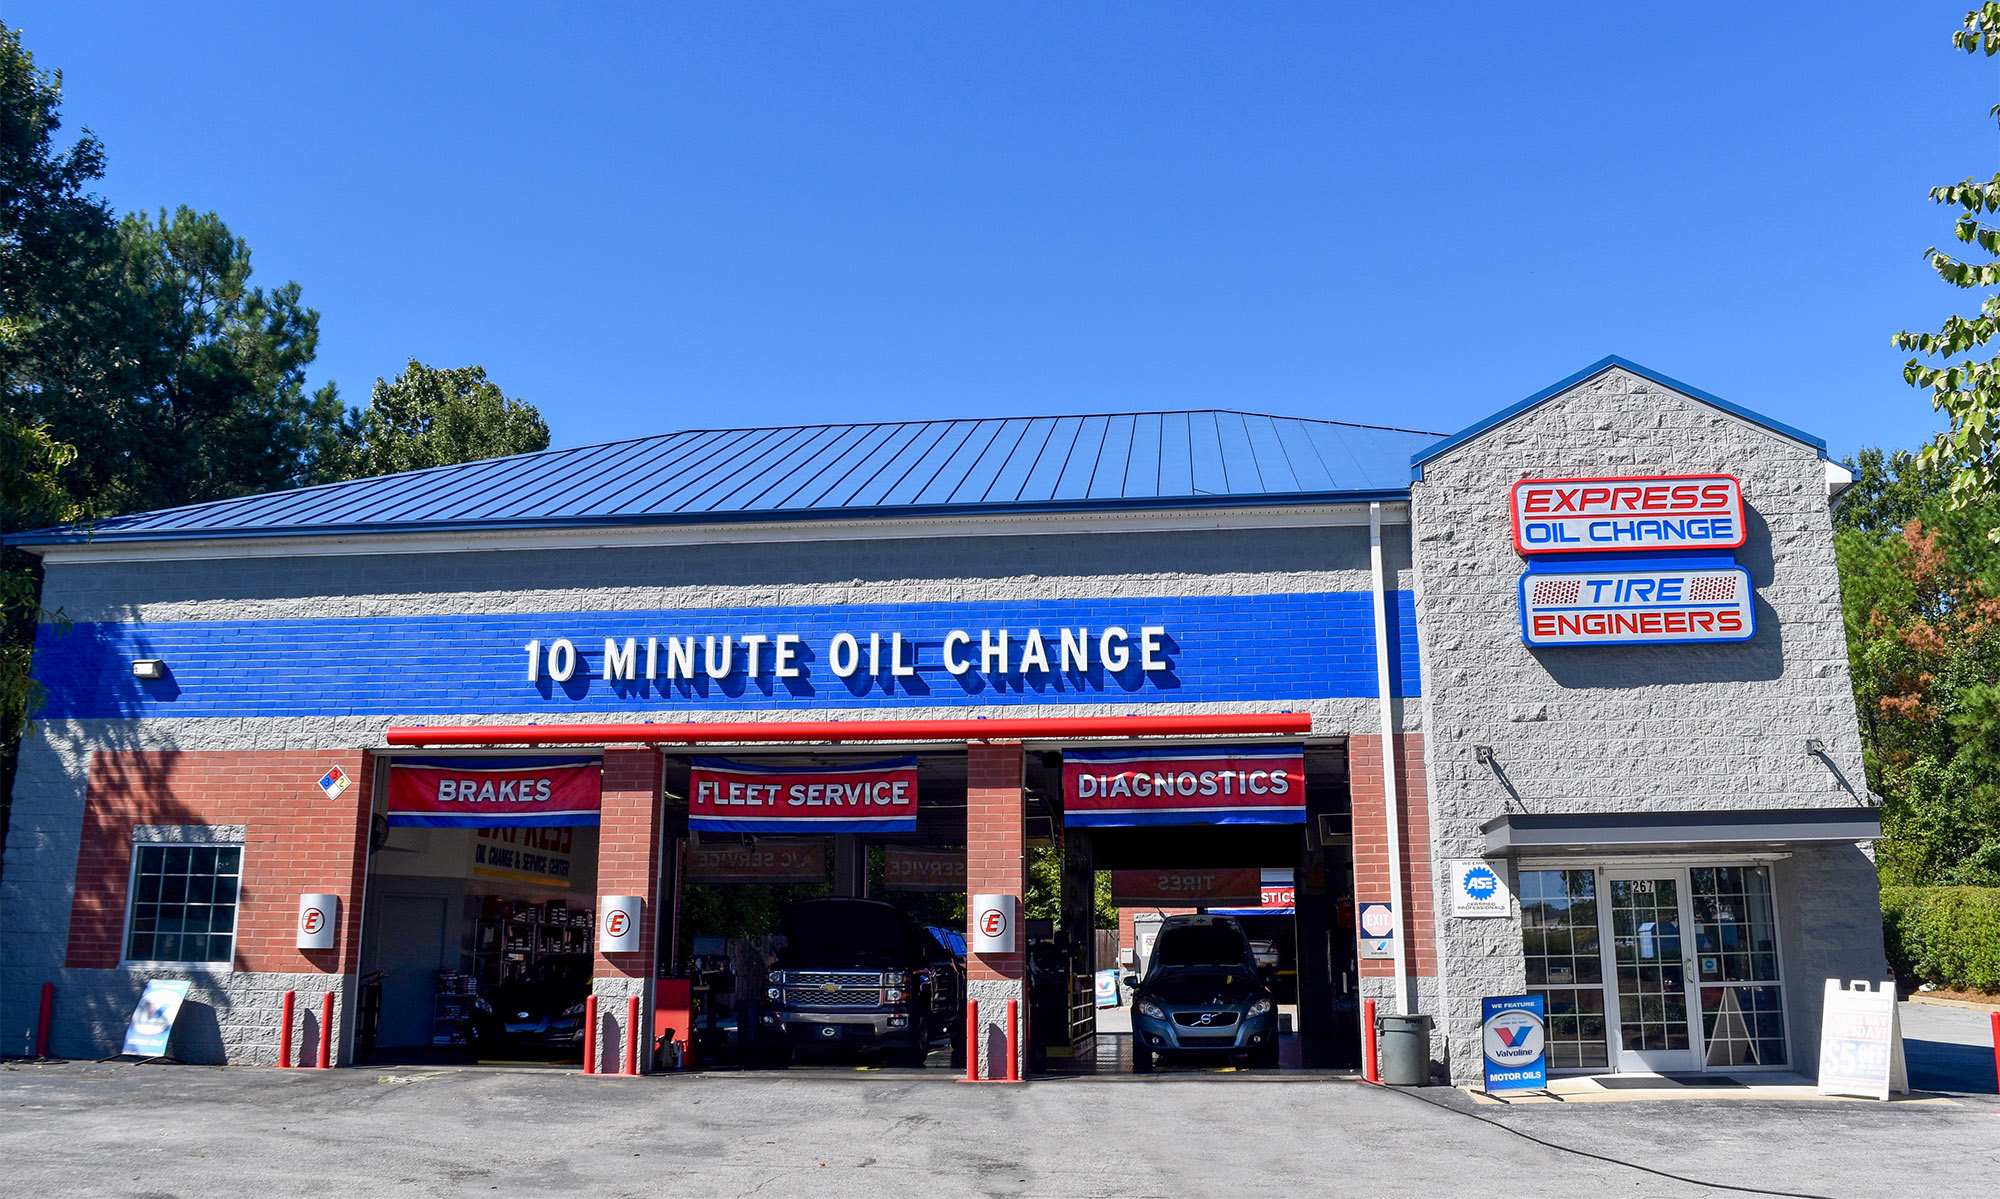 Vehicle Tire Alignment Near Me Jiffy Lube >> Oil Change Tires Auto Repair Columbia 29212 Express Oil